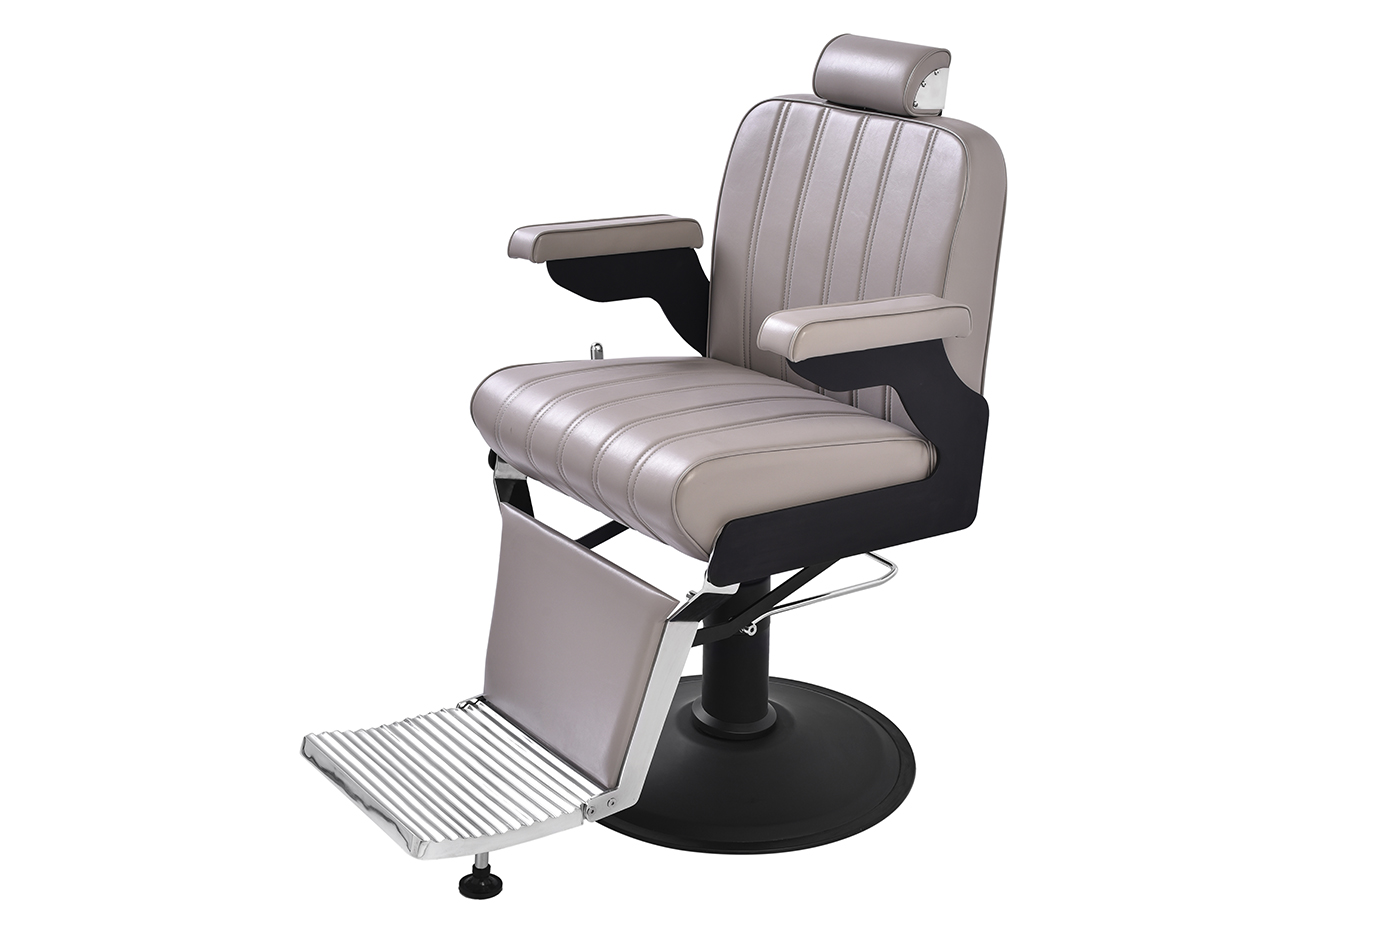 Marc's barber chair designed for clients' comfort